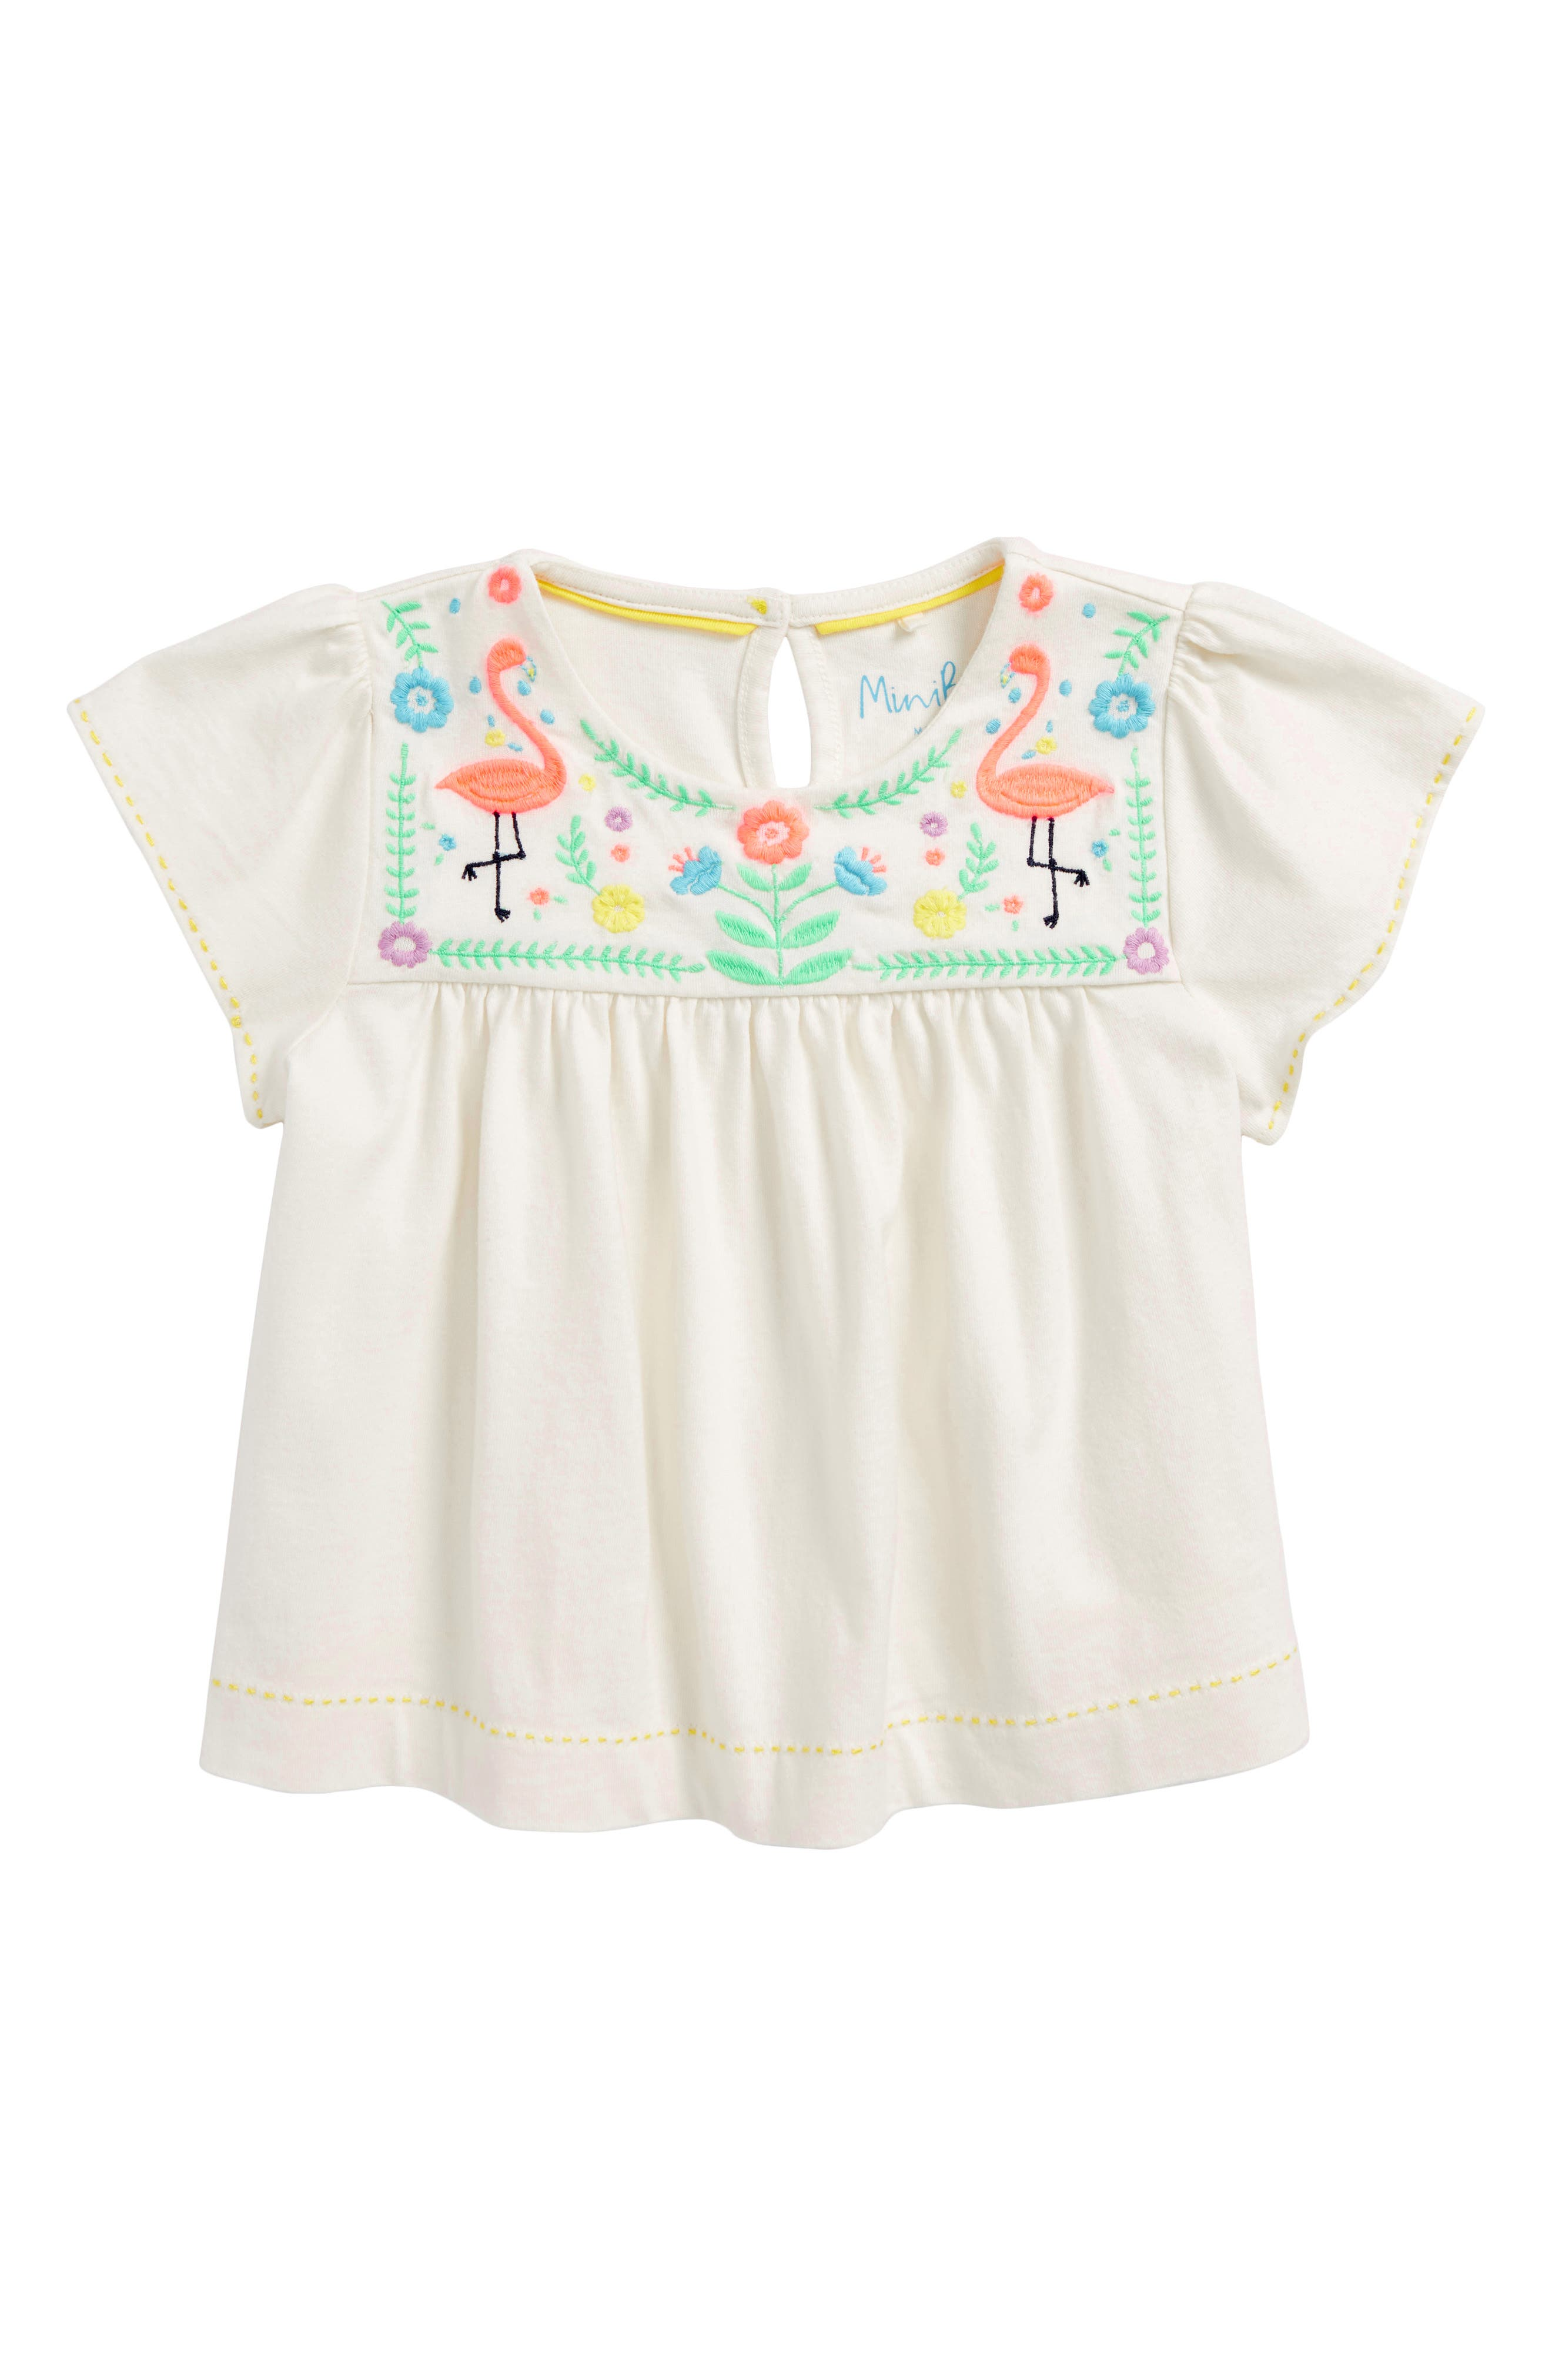 Embroidered Joke Top,                             Main thumbnail 1, color,                             Ivory/ Multi